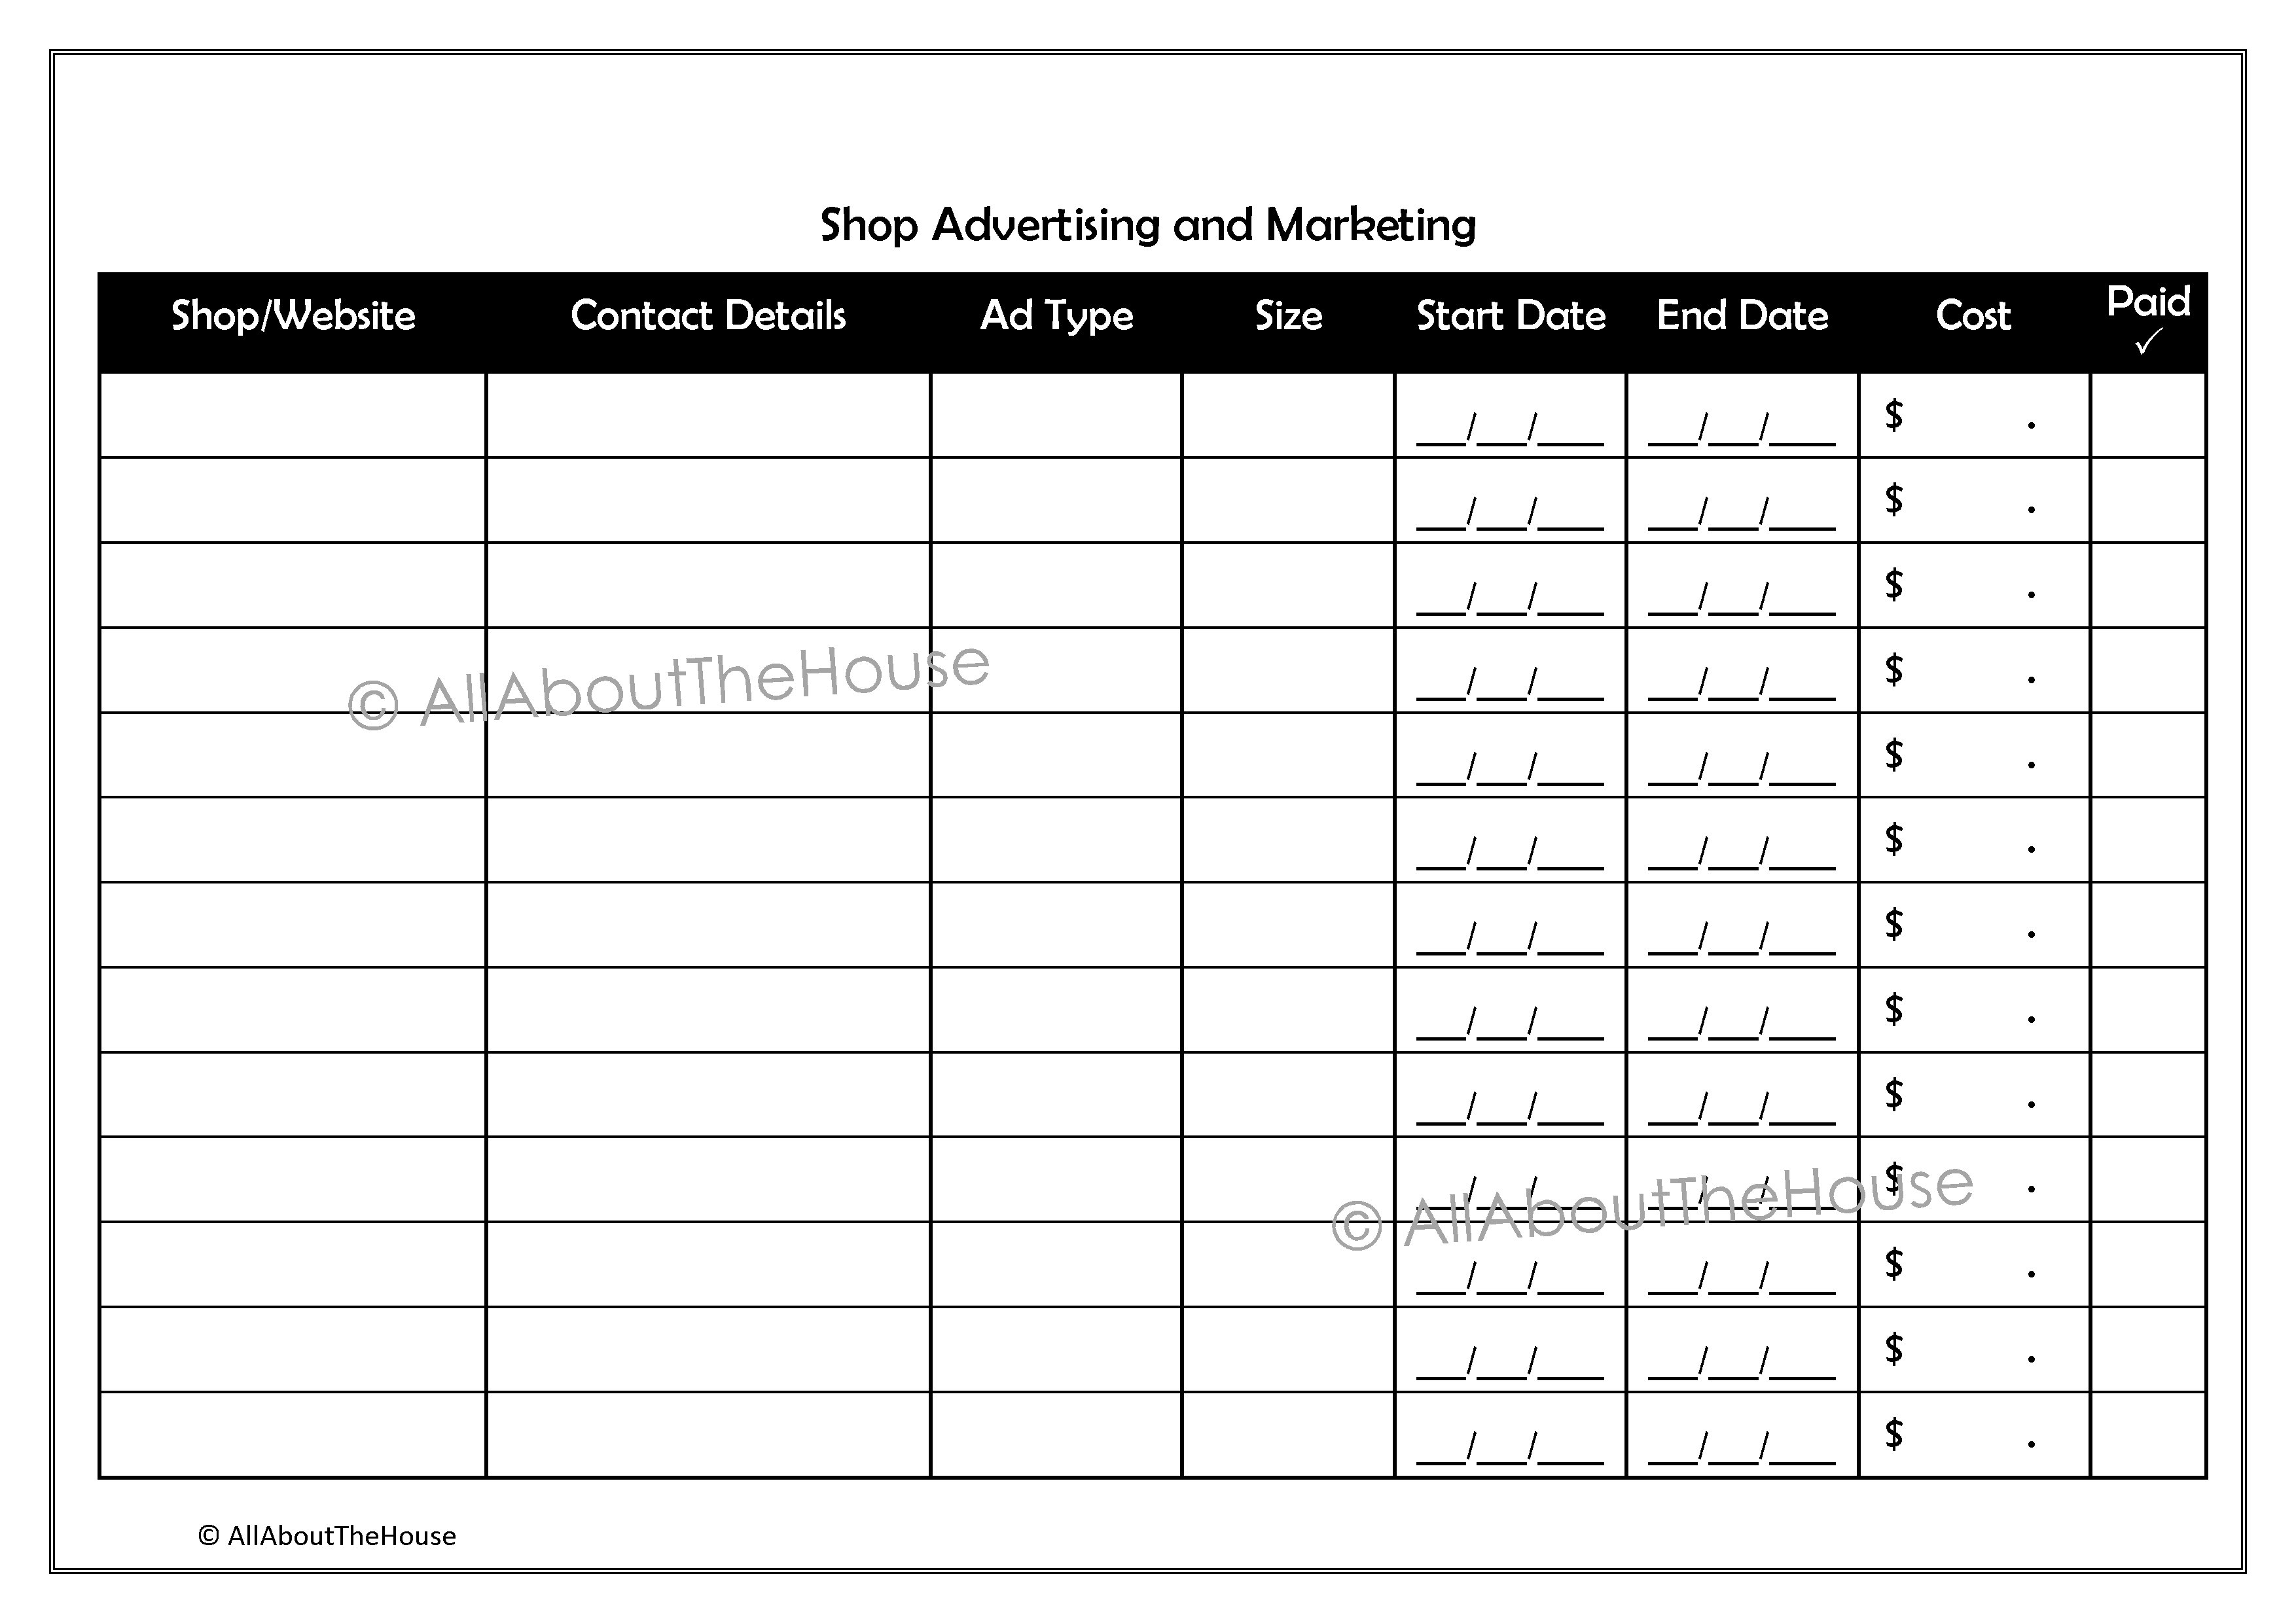 202. Advertising & Marketing - AllAboutTheHouse